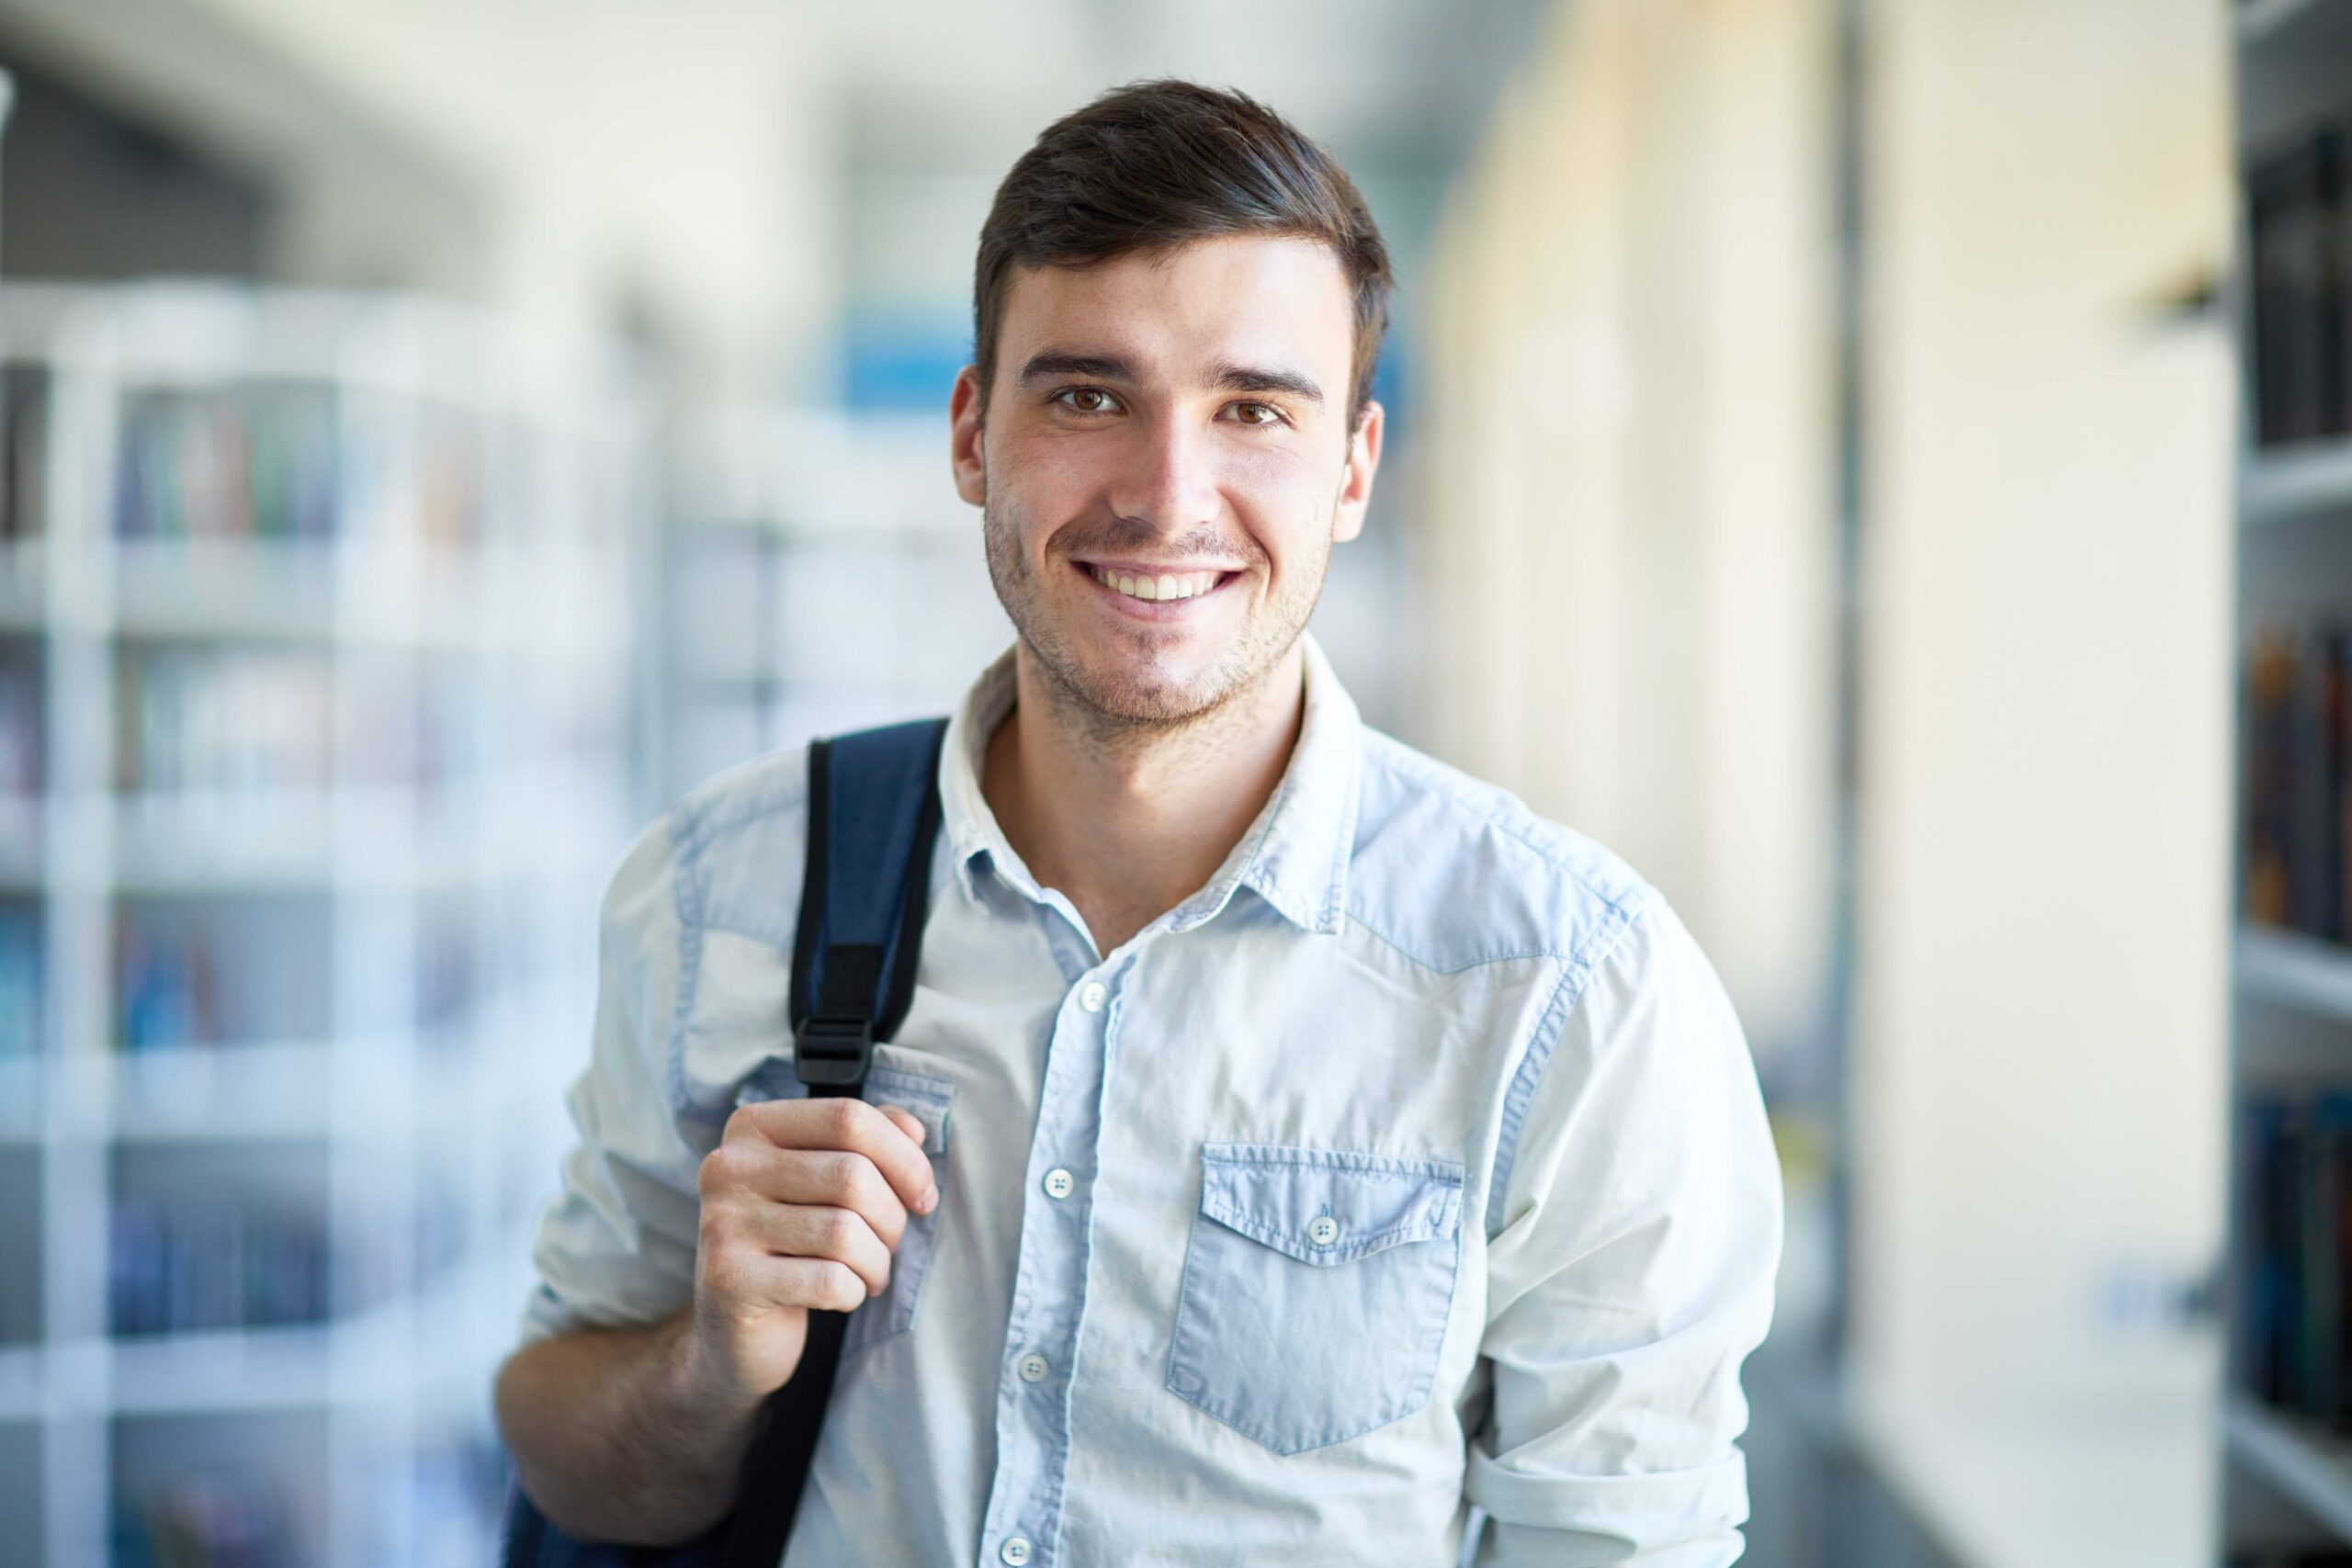 Smiling handsome young guy in denim shirt holding handle of satchel and looking at camera while standing in university corridor